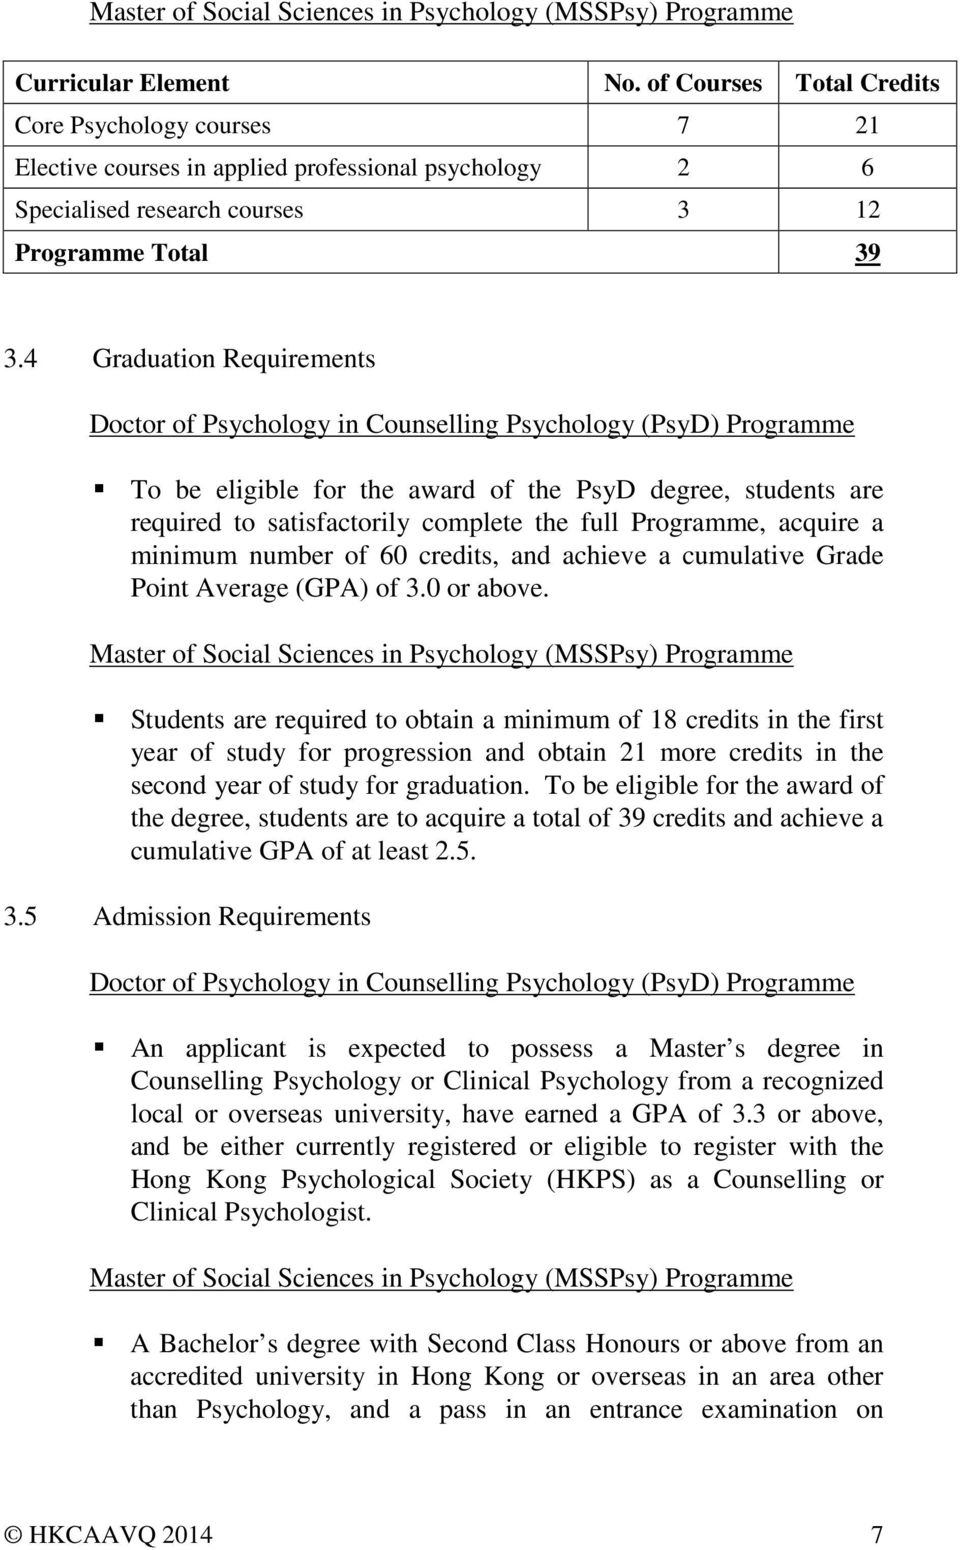 4 Graduation Requirements Doctor of Psychology in Counselling Psychology (PsyD) Programme To be eligible for the award of the PsyD degree, students are required to satisfactorily complete the full